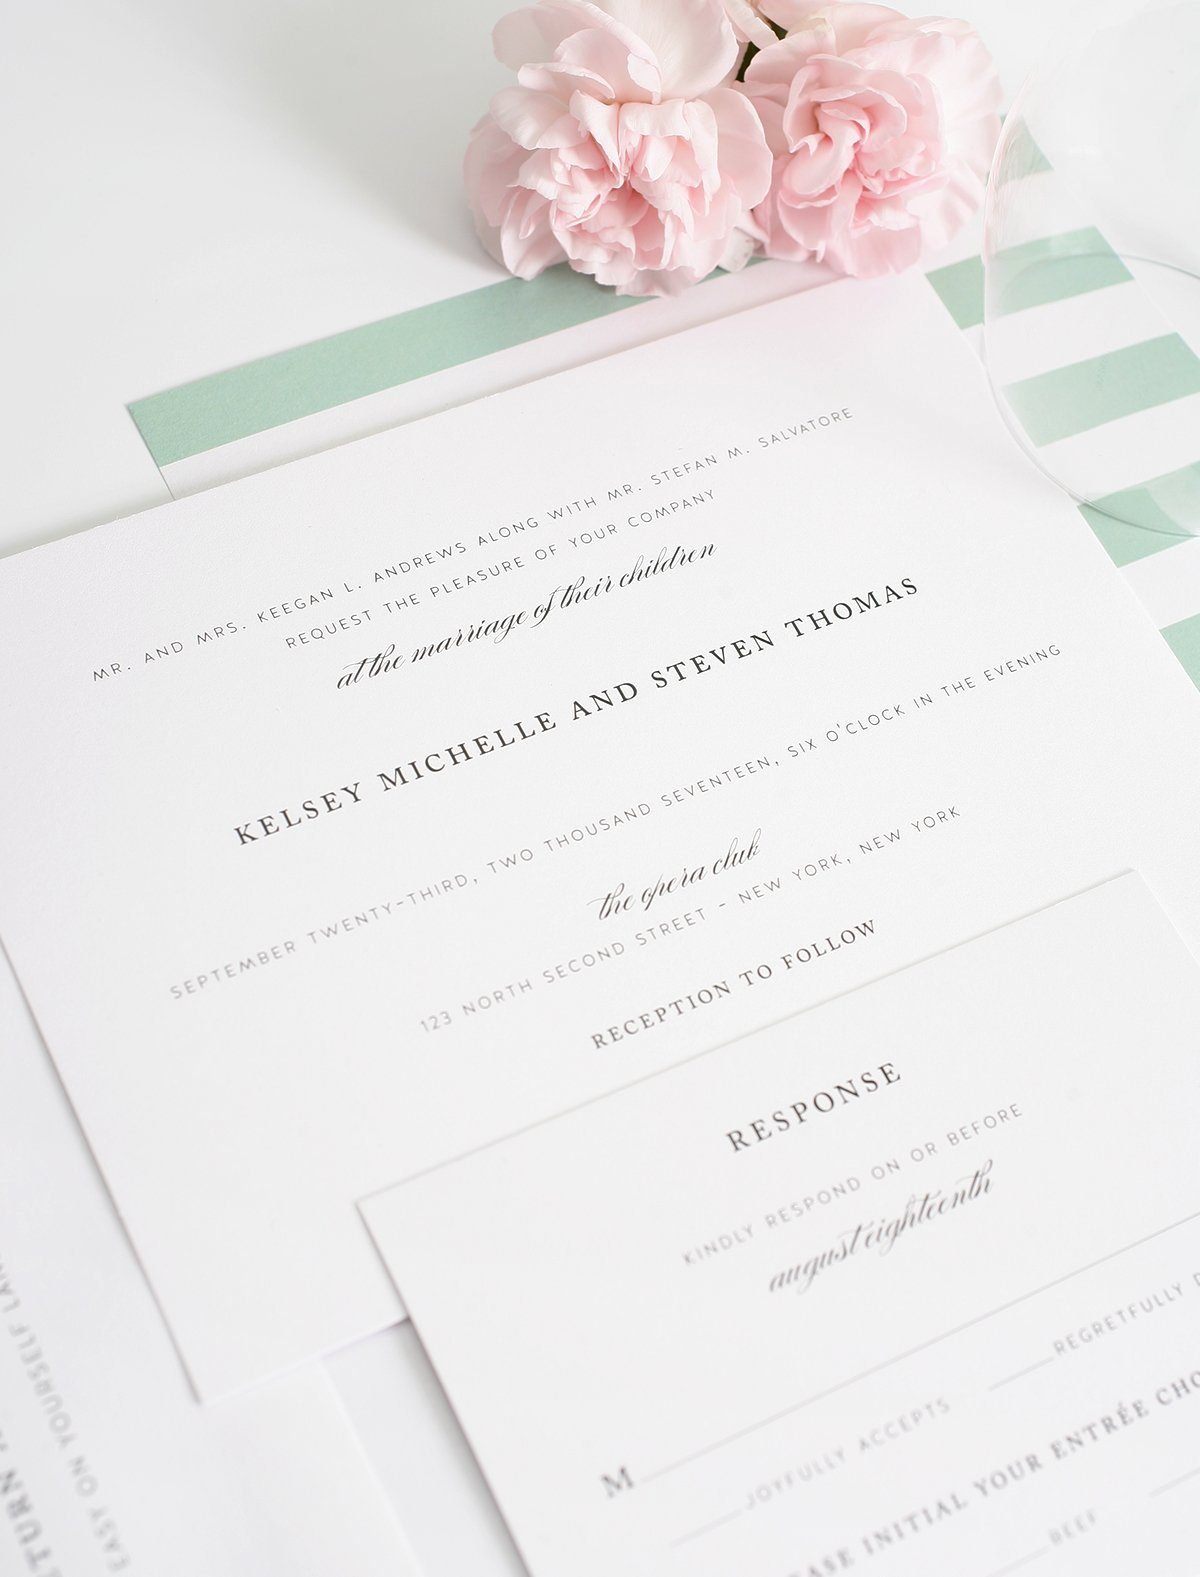 Timeless wedding invitations in sage green